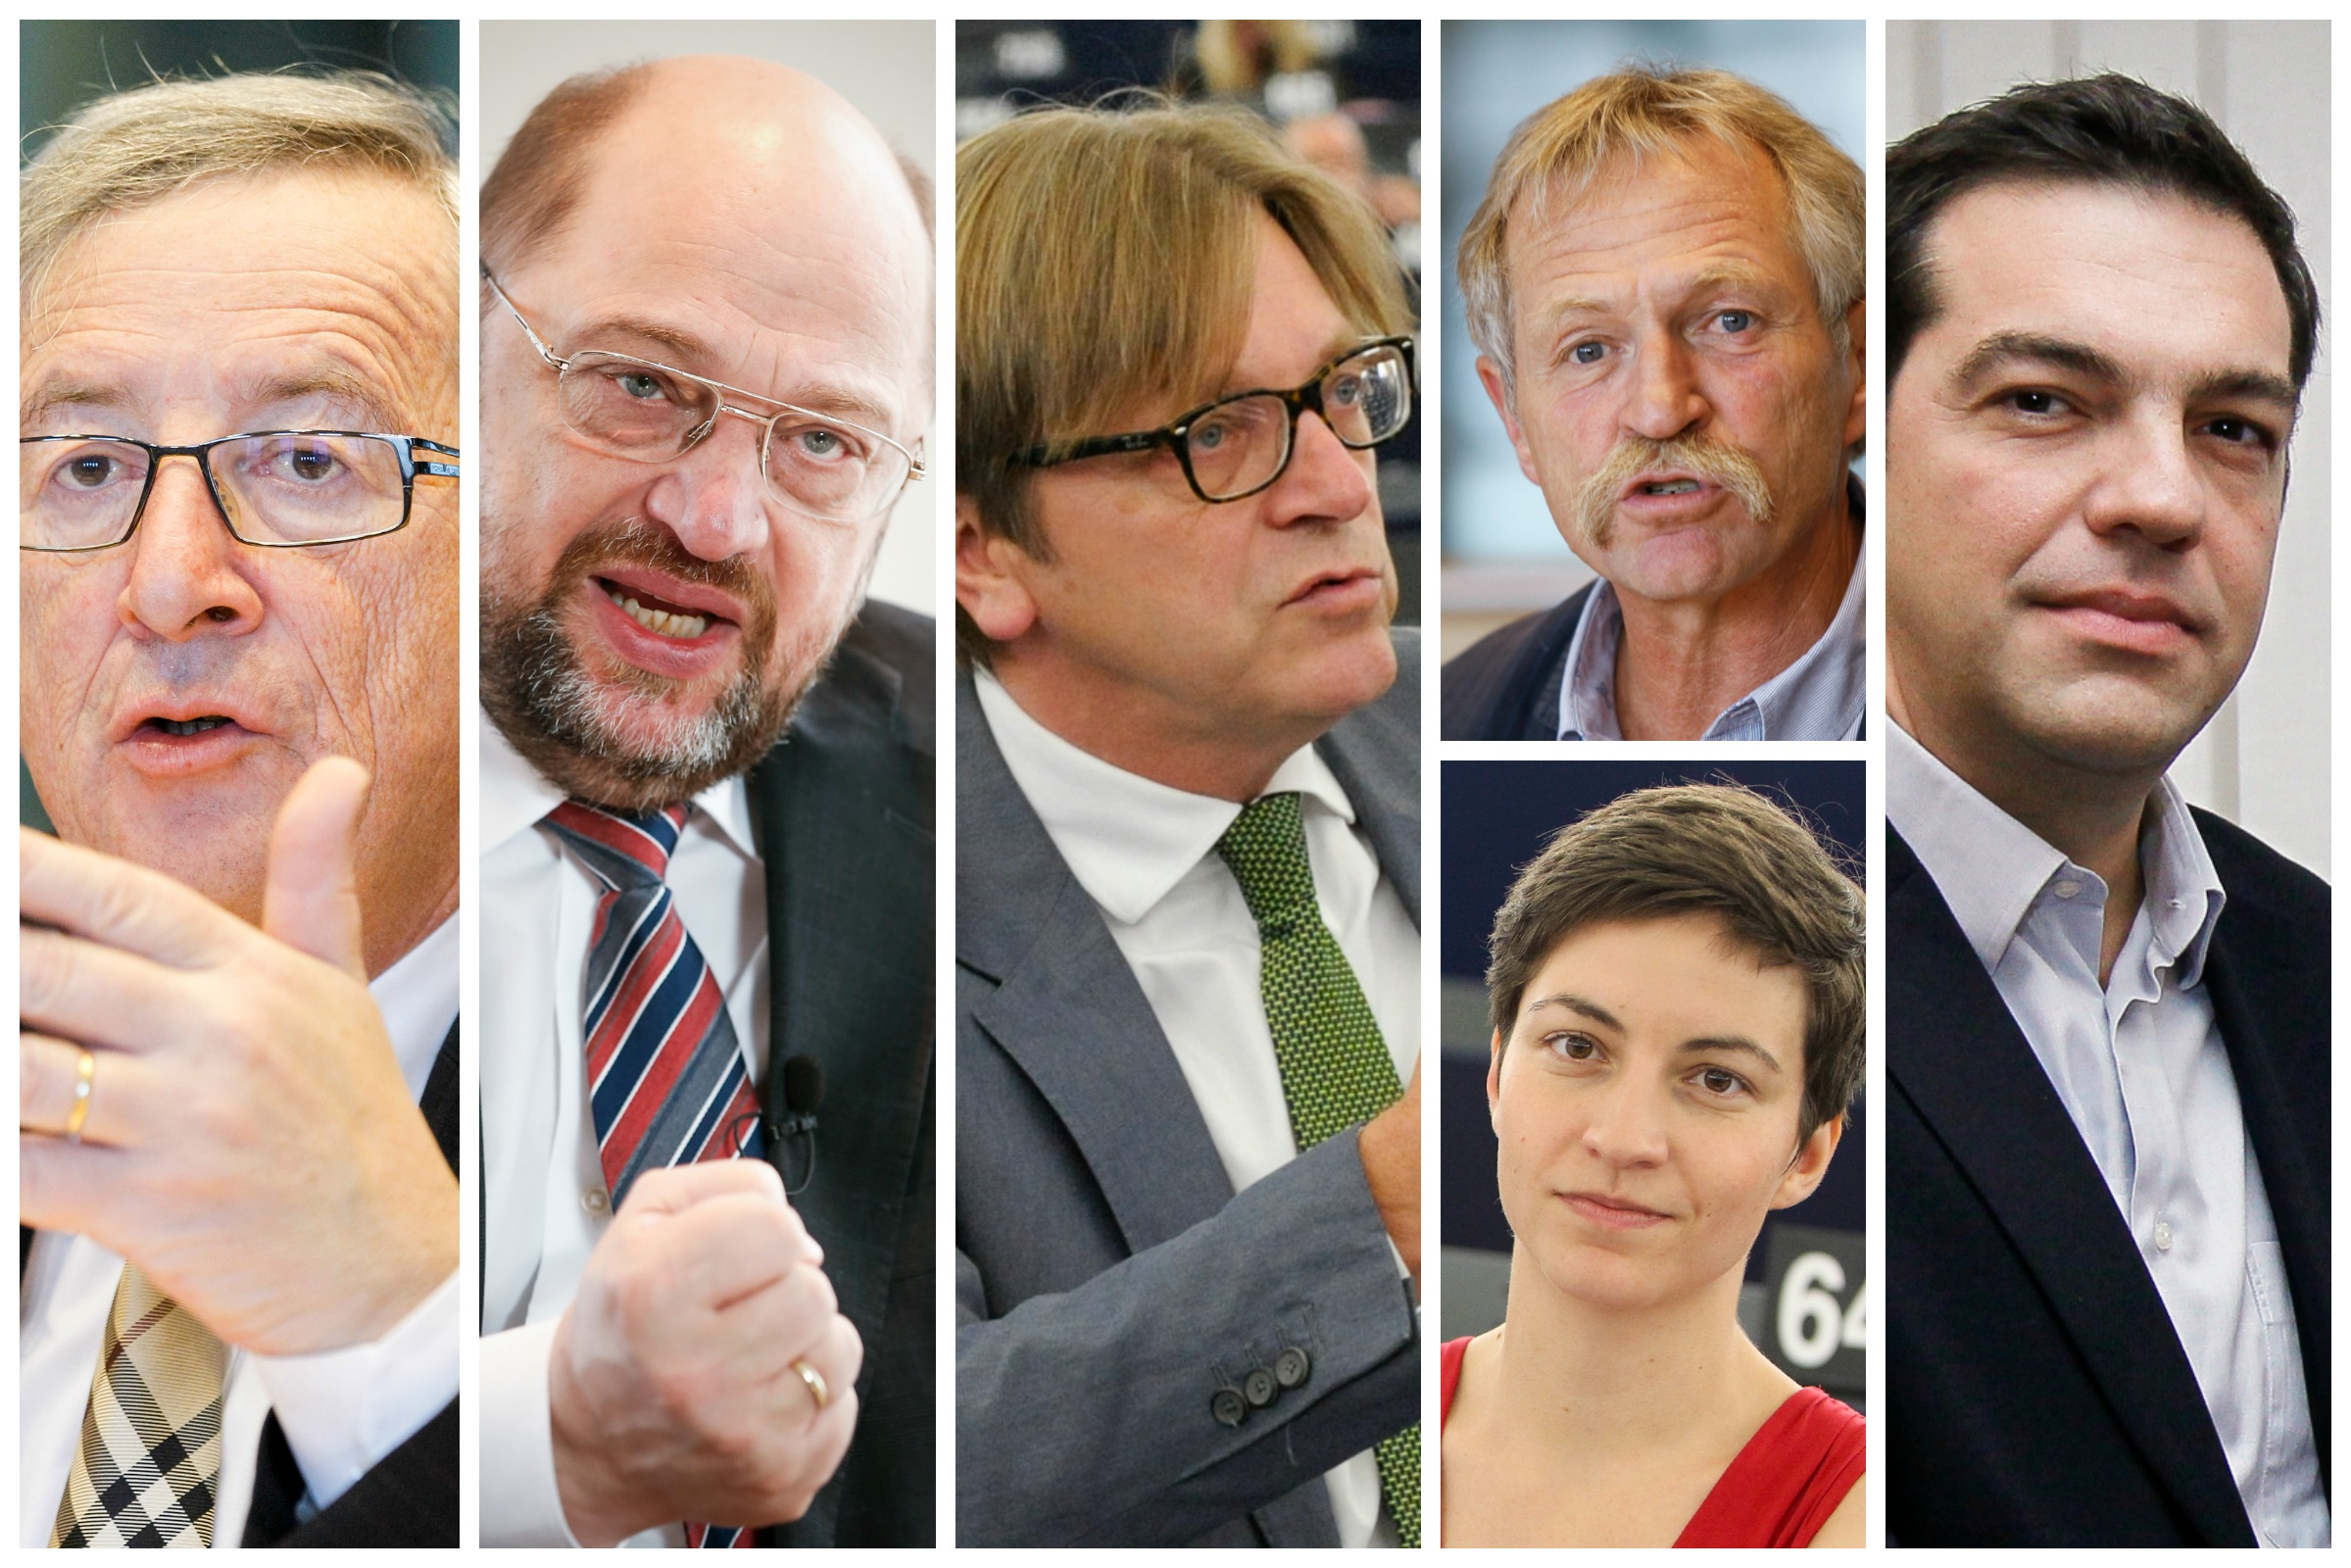 Europe's Spitzenkandidaten for the 2014 European elections [EurActiv/European Parliament]